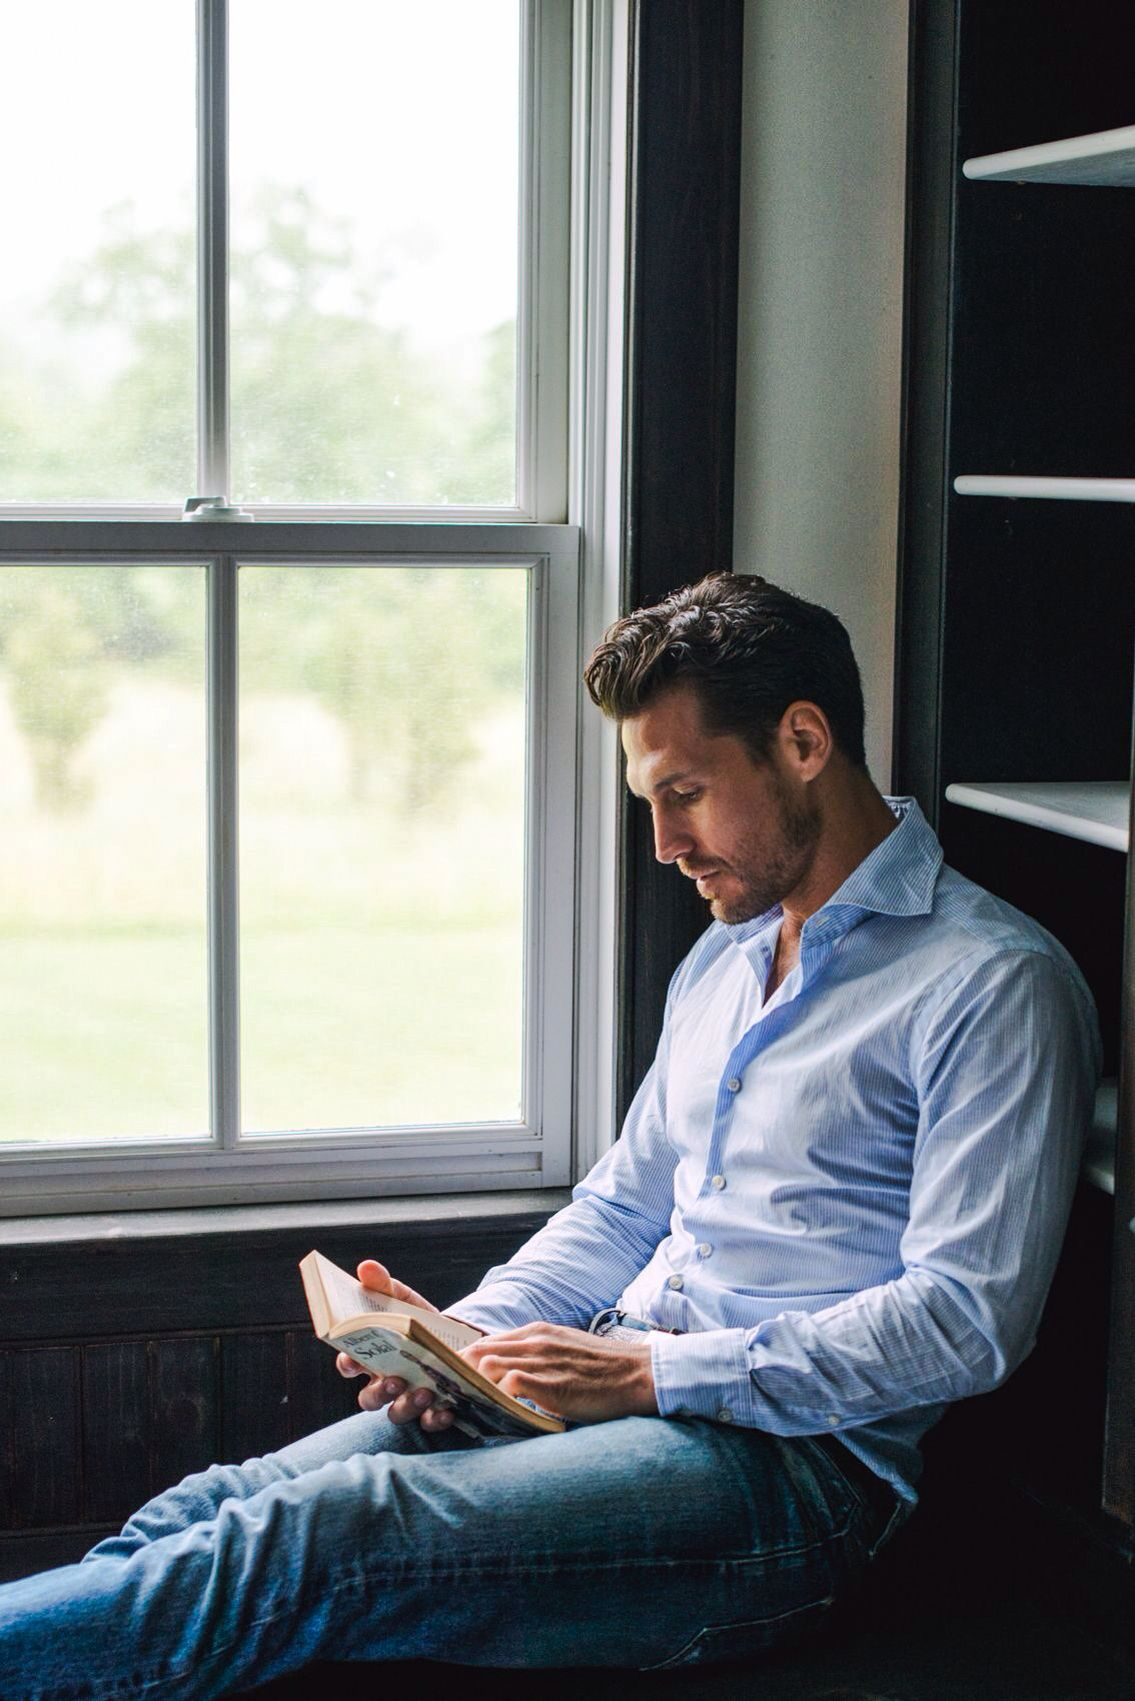 Pin on Reading by a window